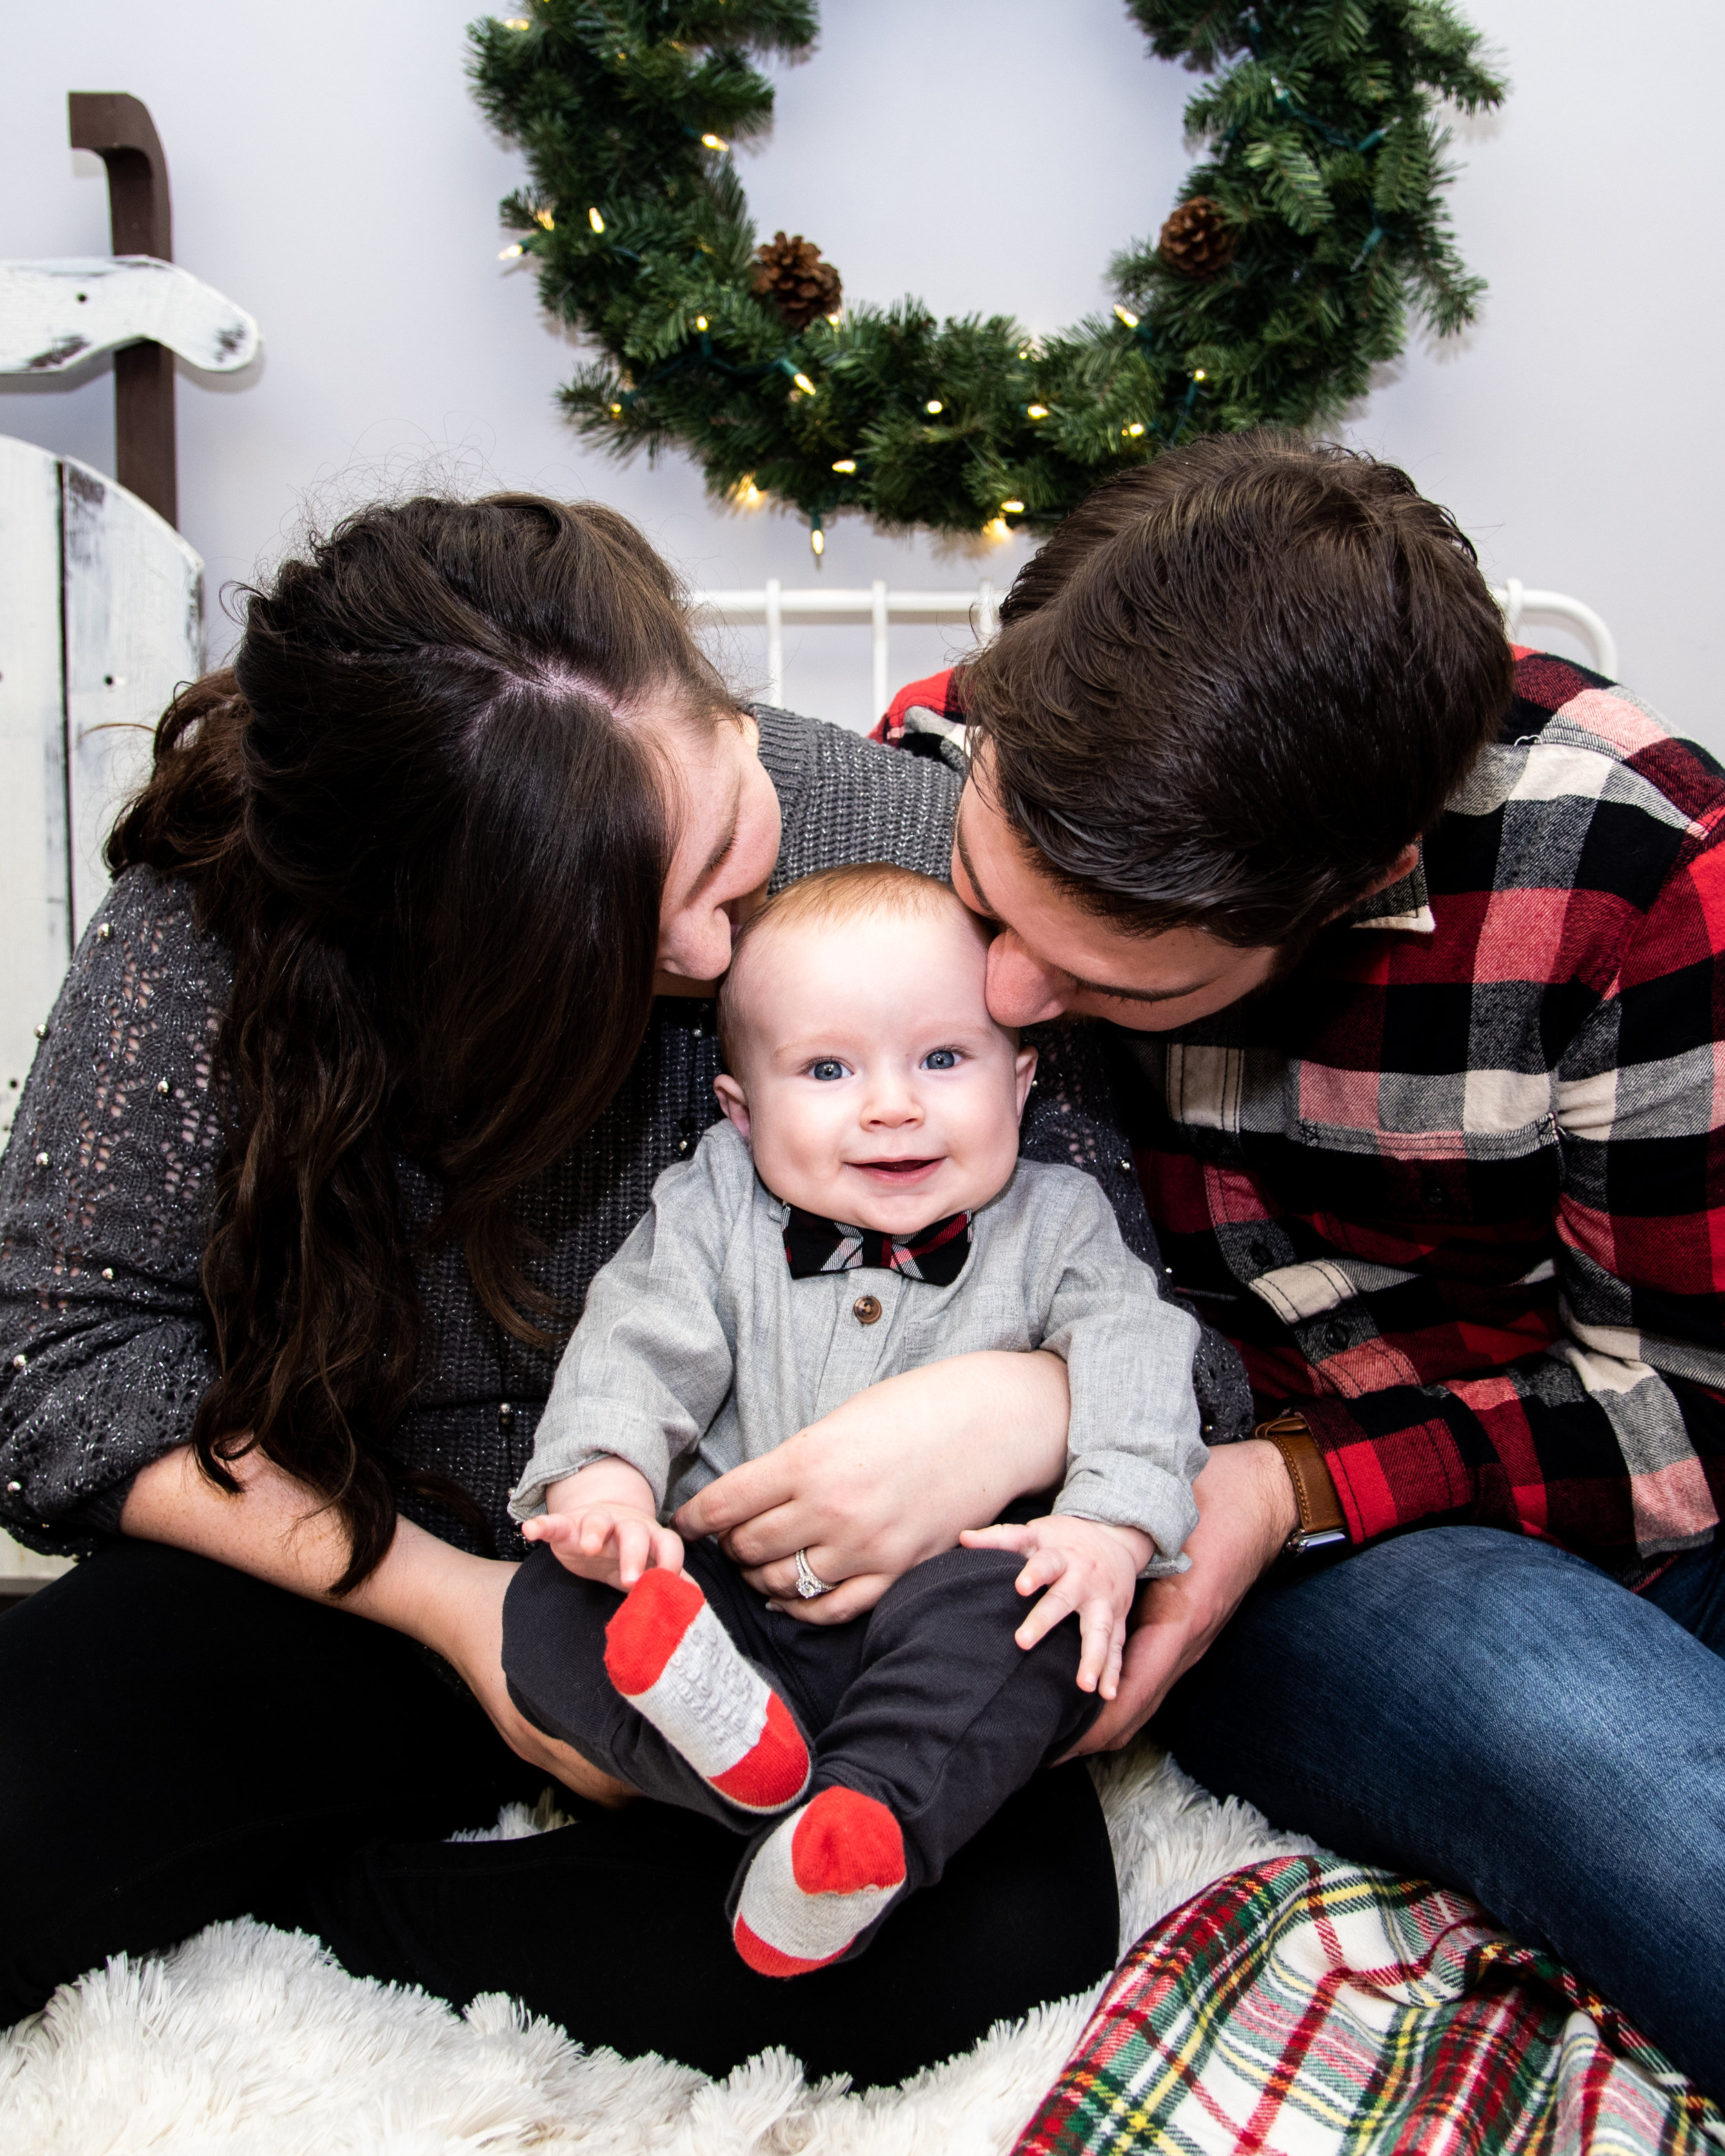 Kyla Jo Photography // Muncie, Indiana // Midwest Photographer // Studio Photographer // Indiana Photography // Christmas Photos